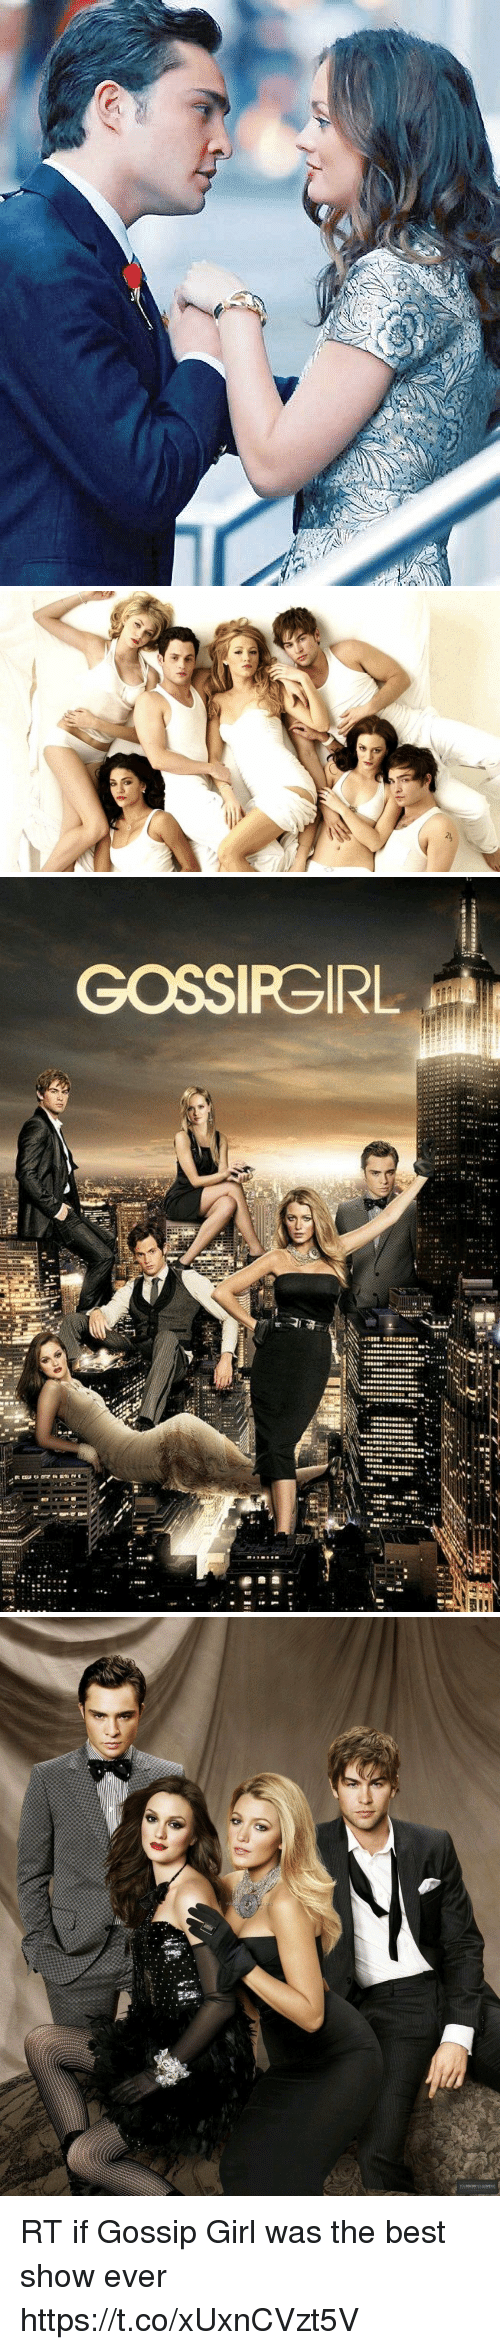 Memes, Best, and Girl: RT if Gossip Girl was the best show ever https://t.co/xUxnCVzt5V